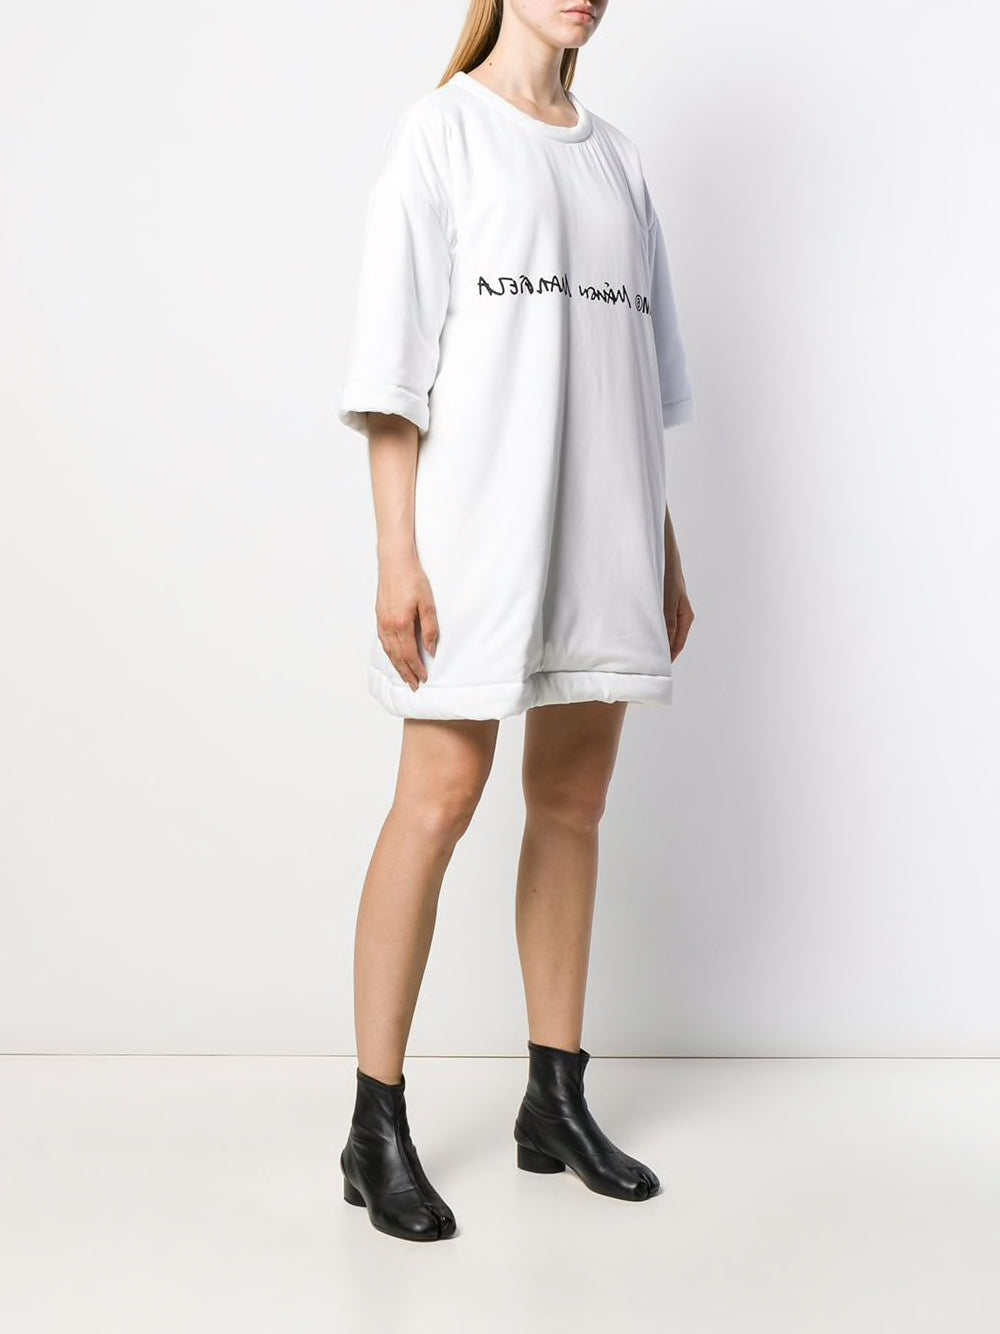 MM6 UNISEX PADDED MAISON MARGIELA LOGO SHORT SLEEVE TEE